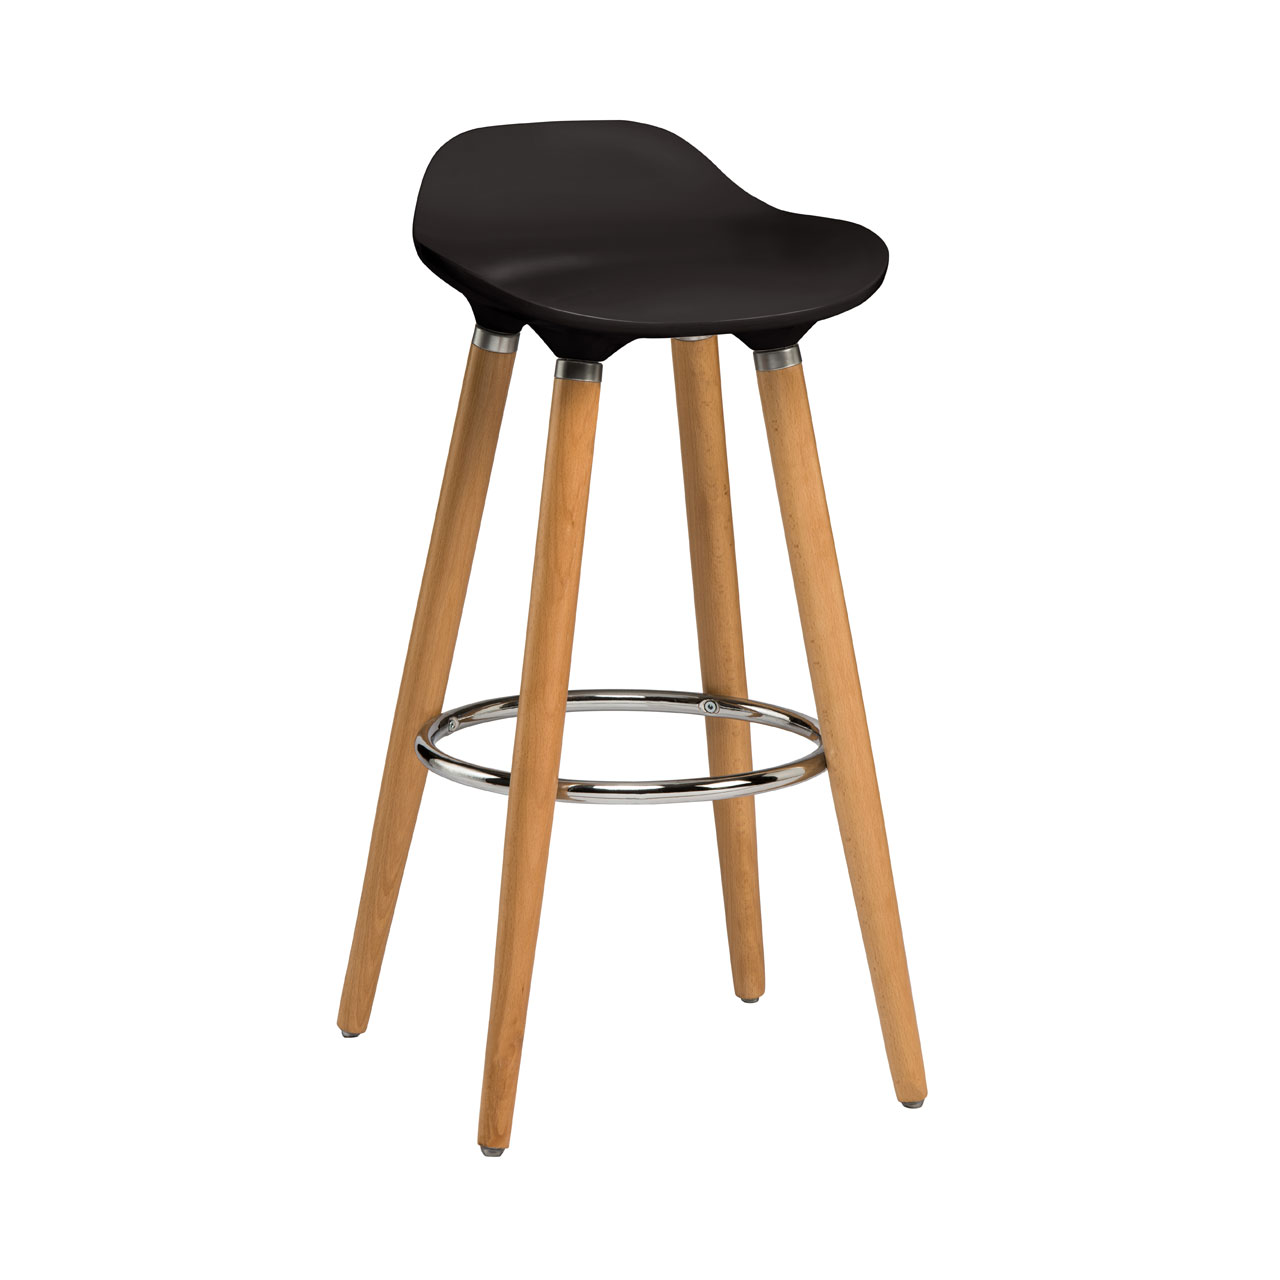 Stockholm Bar Stool Black Plastic Seat Beech Wood Legs Breakfast ...